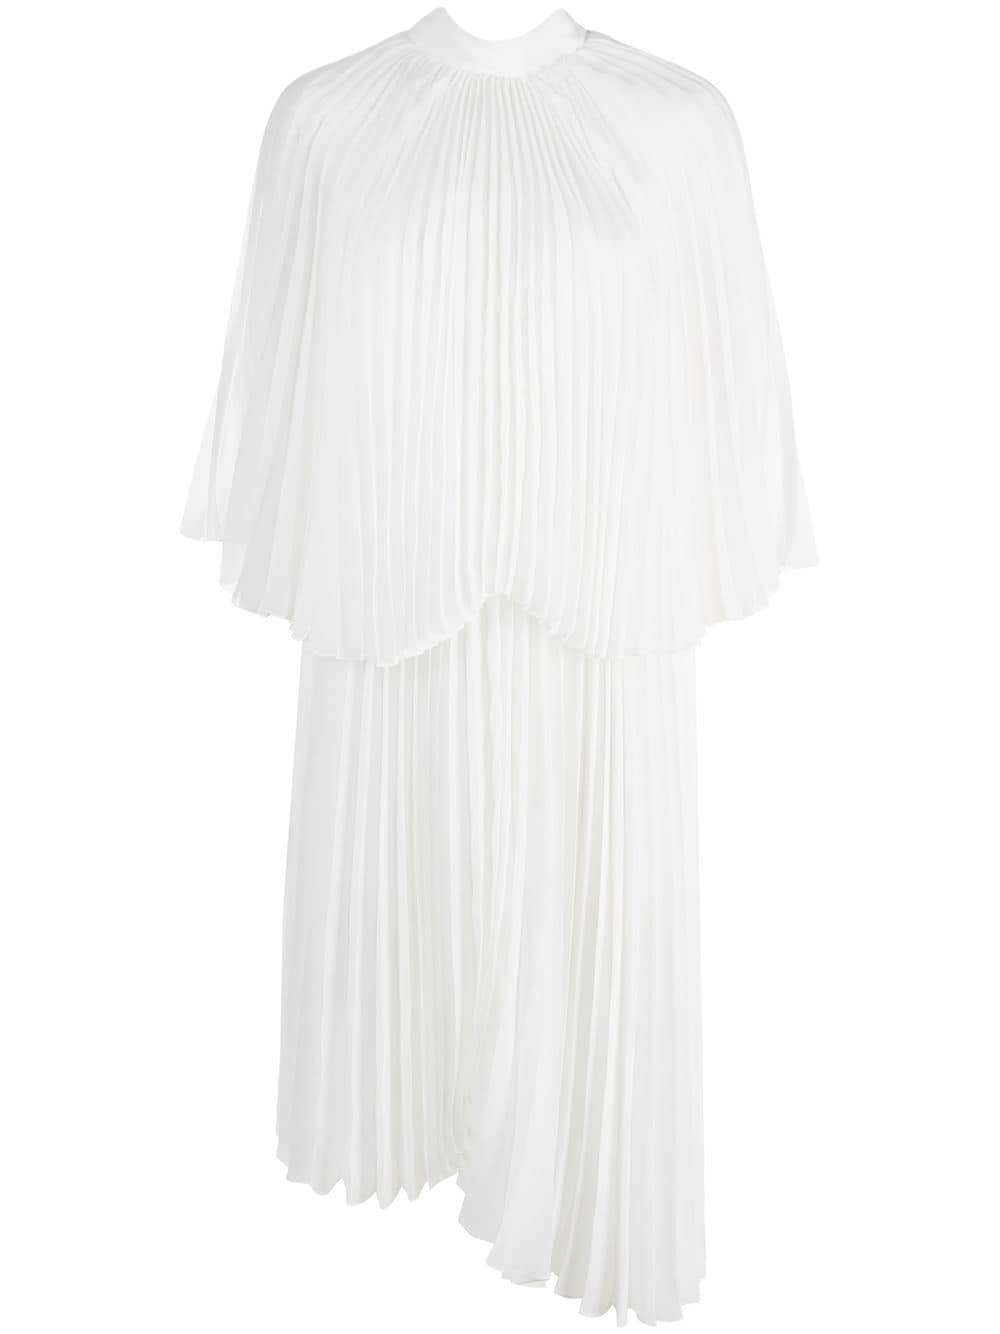 white asymmetric pleated cocktail dress fully pleated BROGNANO |  | 29BR1A26-20476301